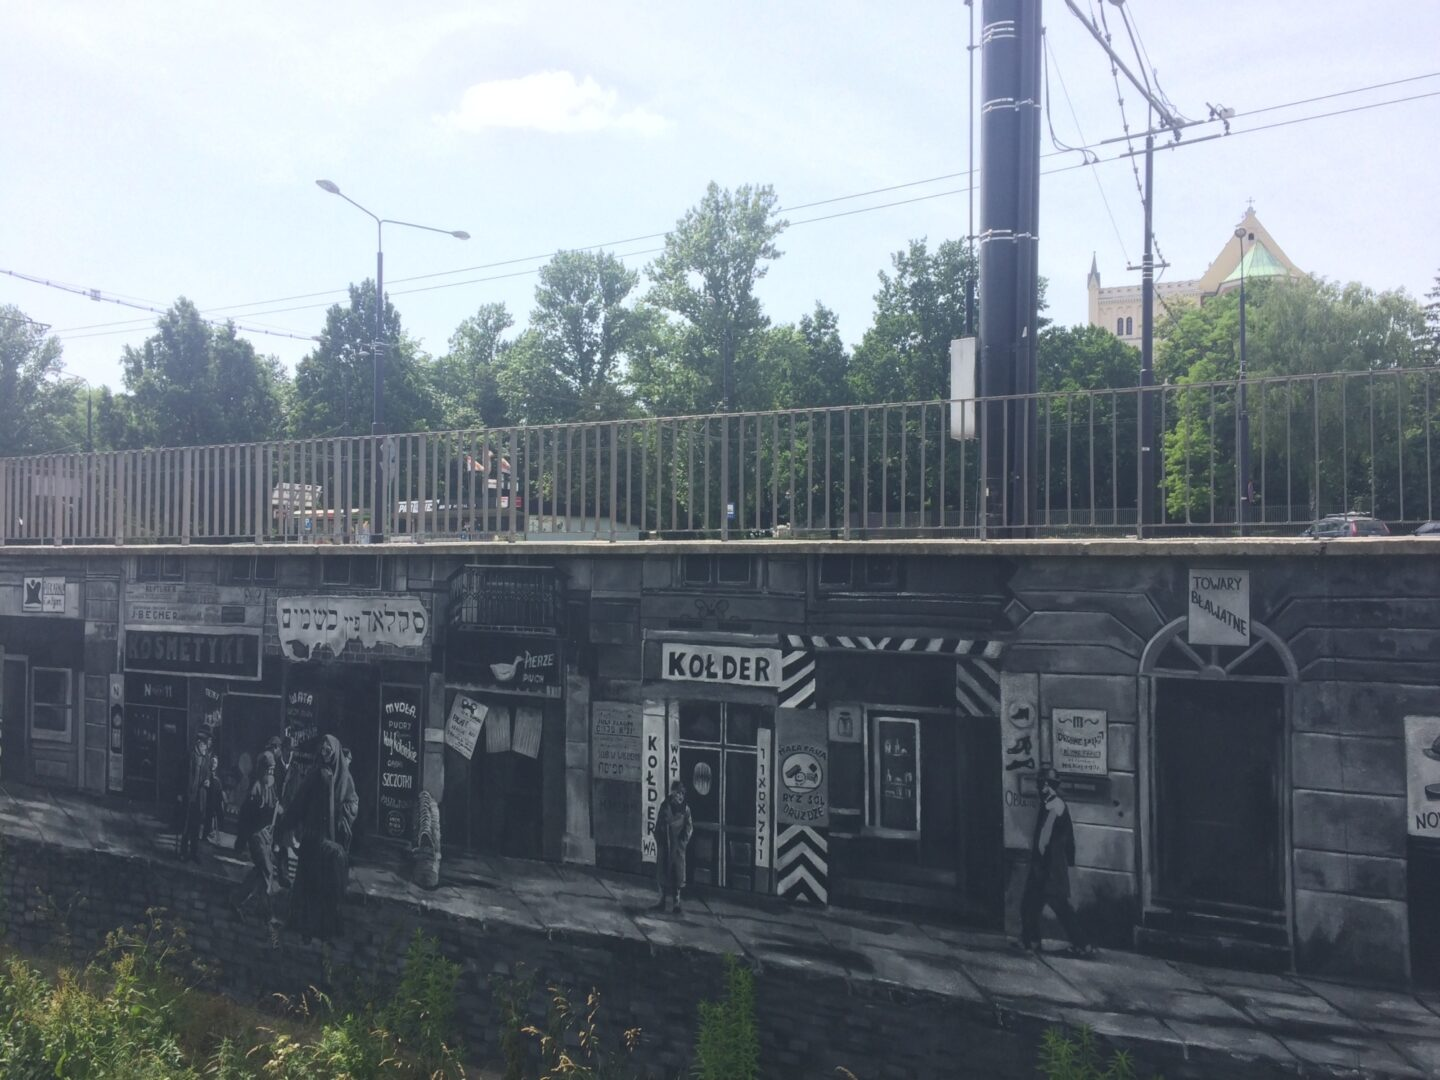 "<p>Mur­al along the Czechówka riv­er in Lublin, in the for­mer­ly Jew­ish neigh­bor­hood of Podzam­cze. For more infor­ma­tion, see <a href=""https://teatrnn.pl/pamiec/en/the-mural-alongside-the-czechowka-river/"">the The­ater <span class=""caps"">NN</span>'s web­site</a>. Pho­to by the&nbsp;author.</p>"